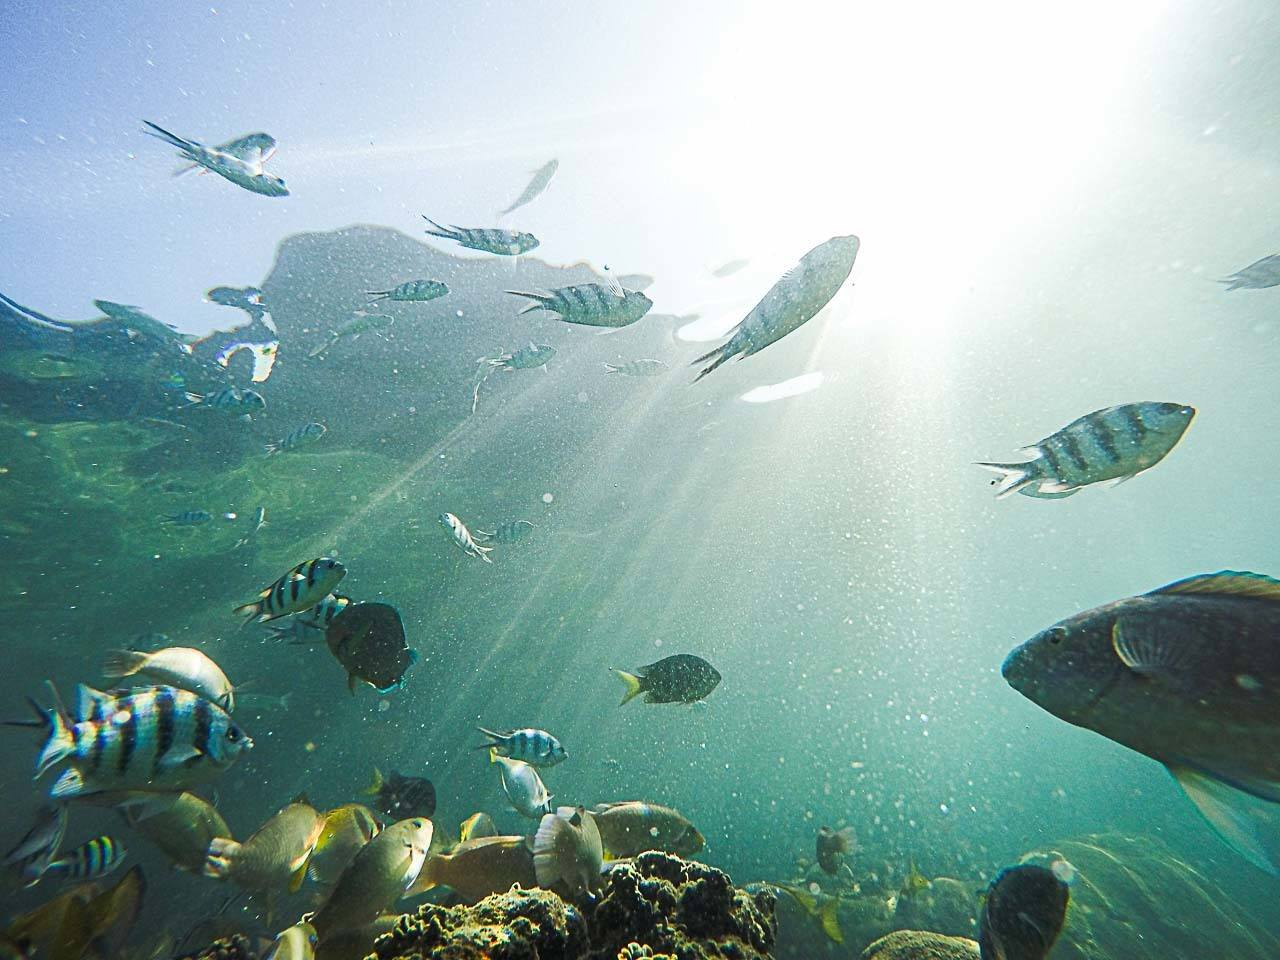 Fish and marine life in Thailand's sea.